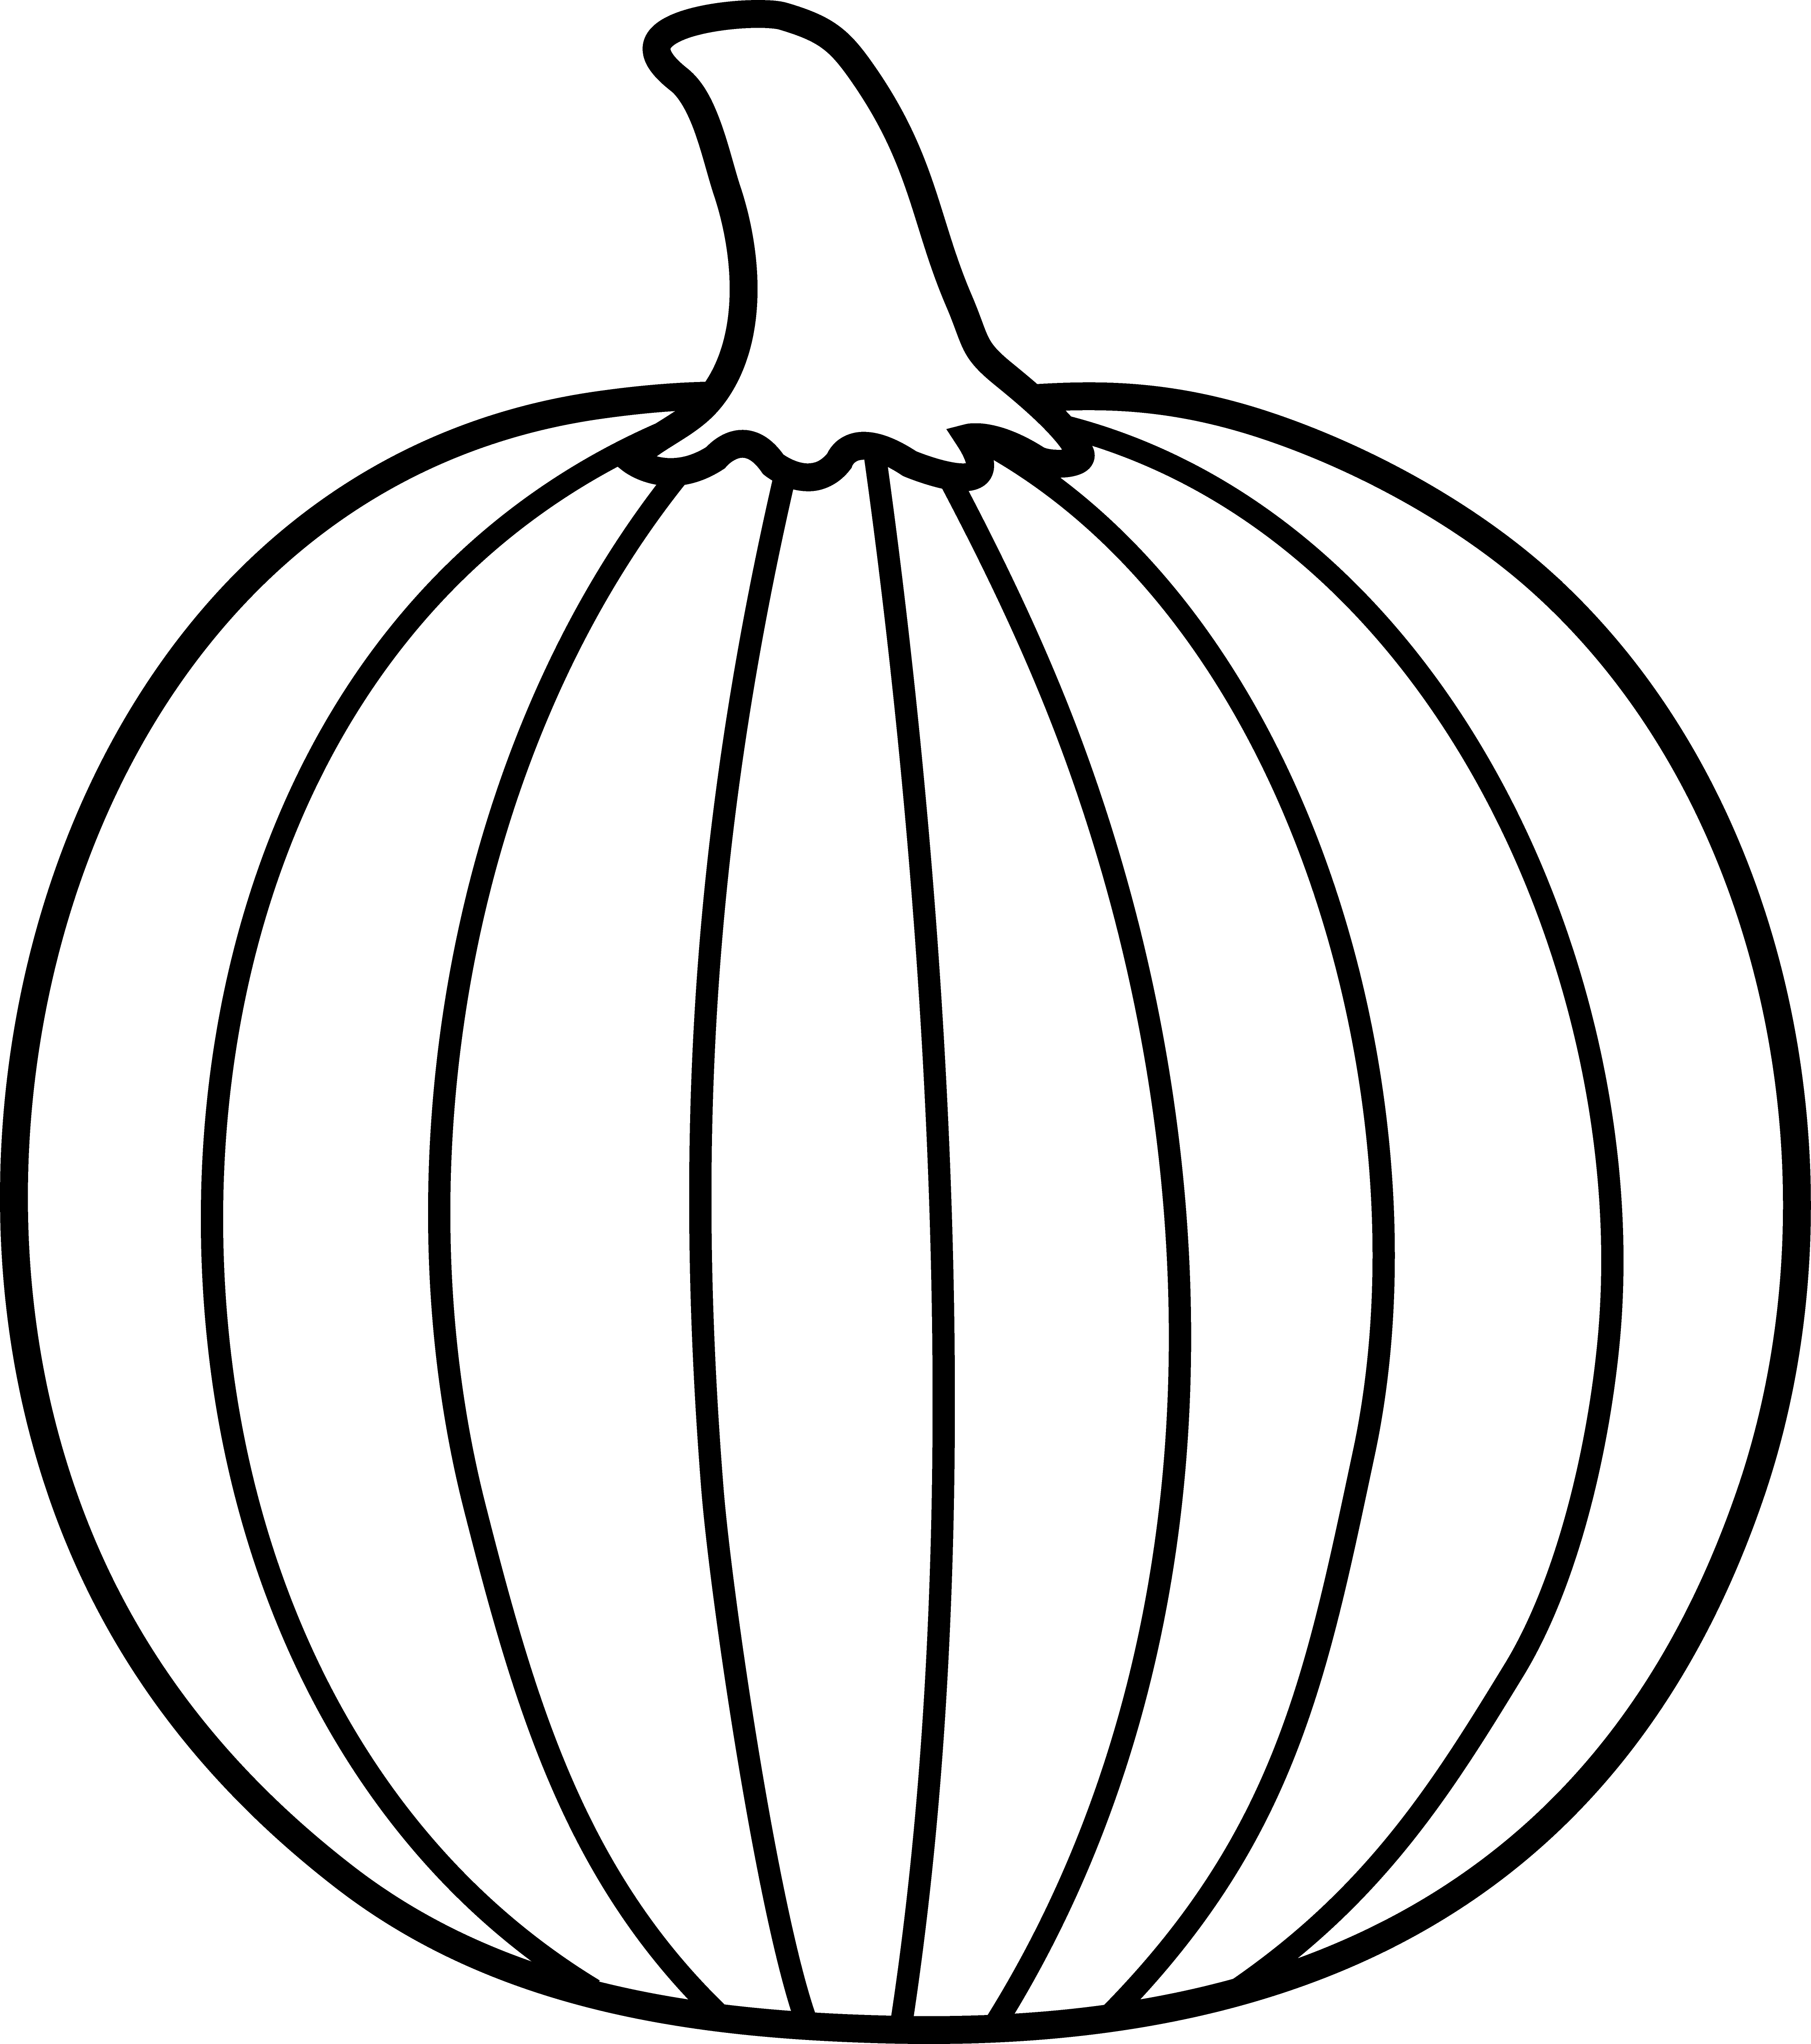 Stem drawing pumpkin. Black and white lineart